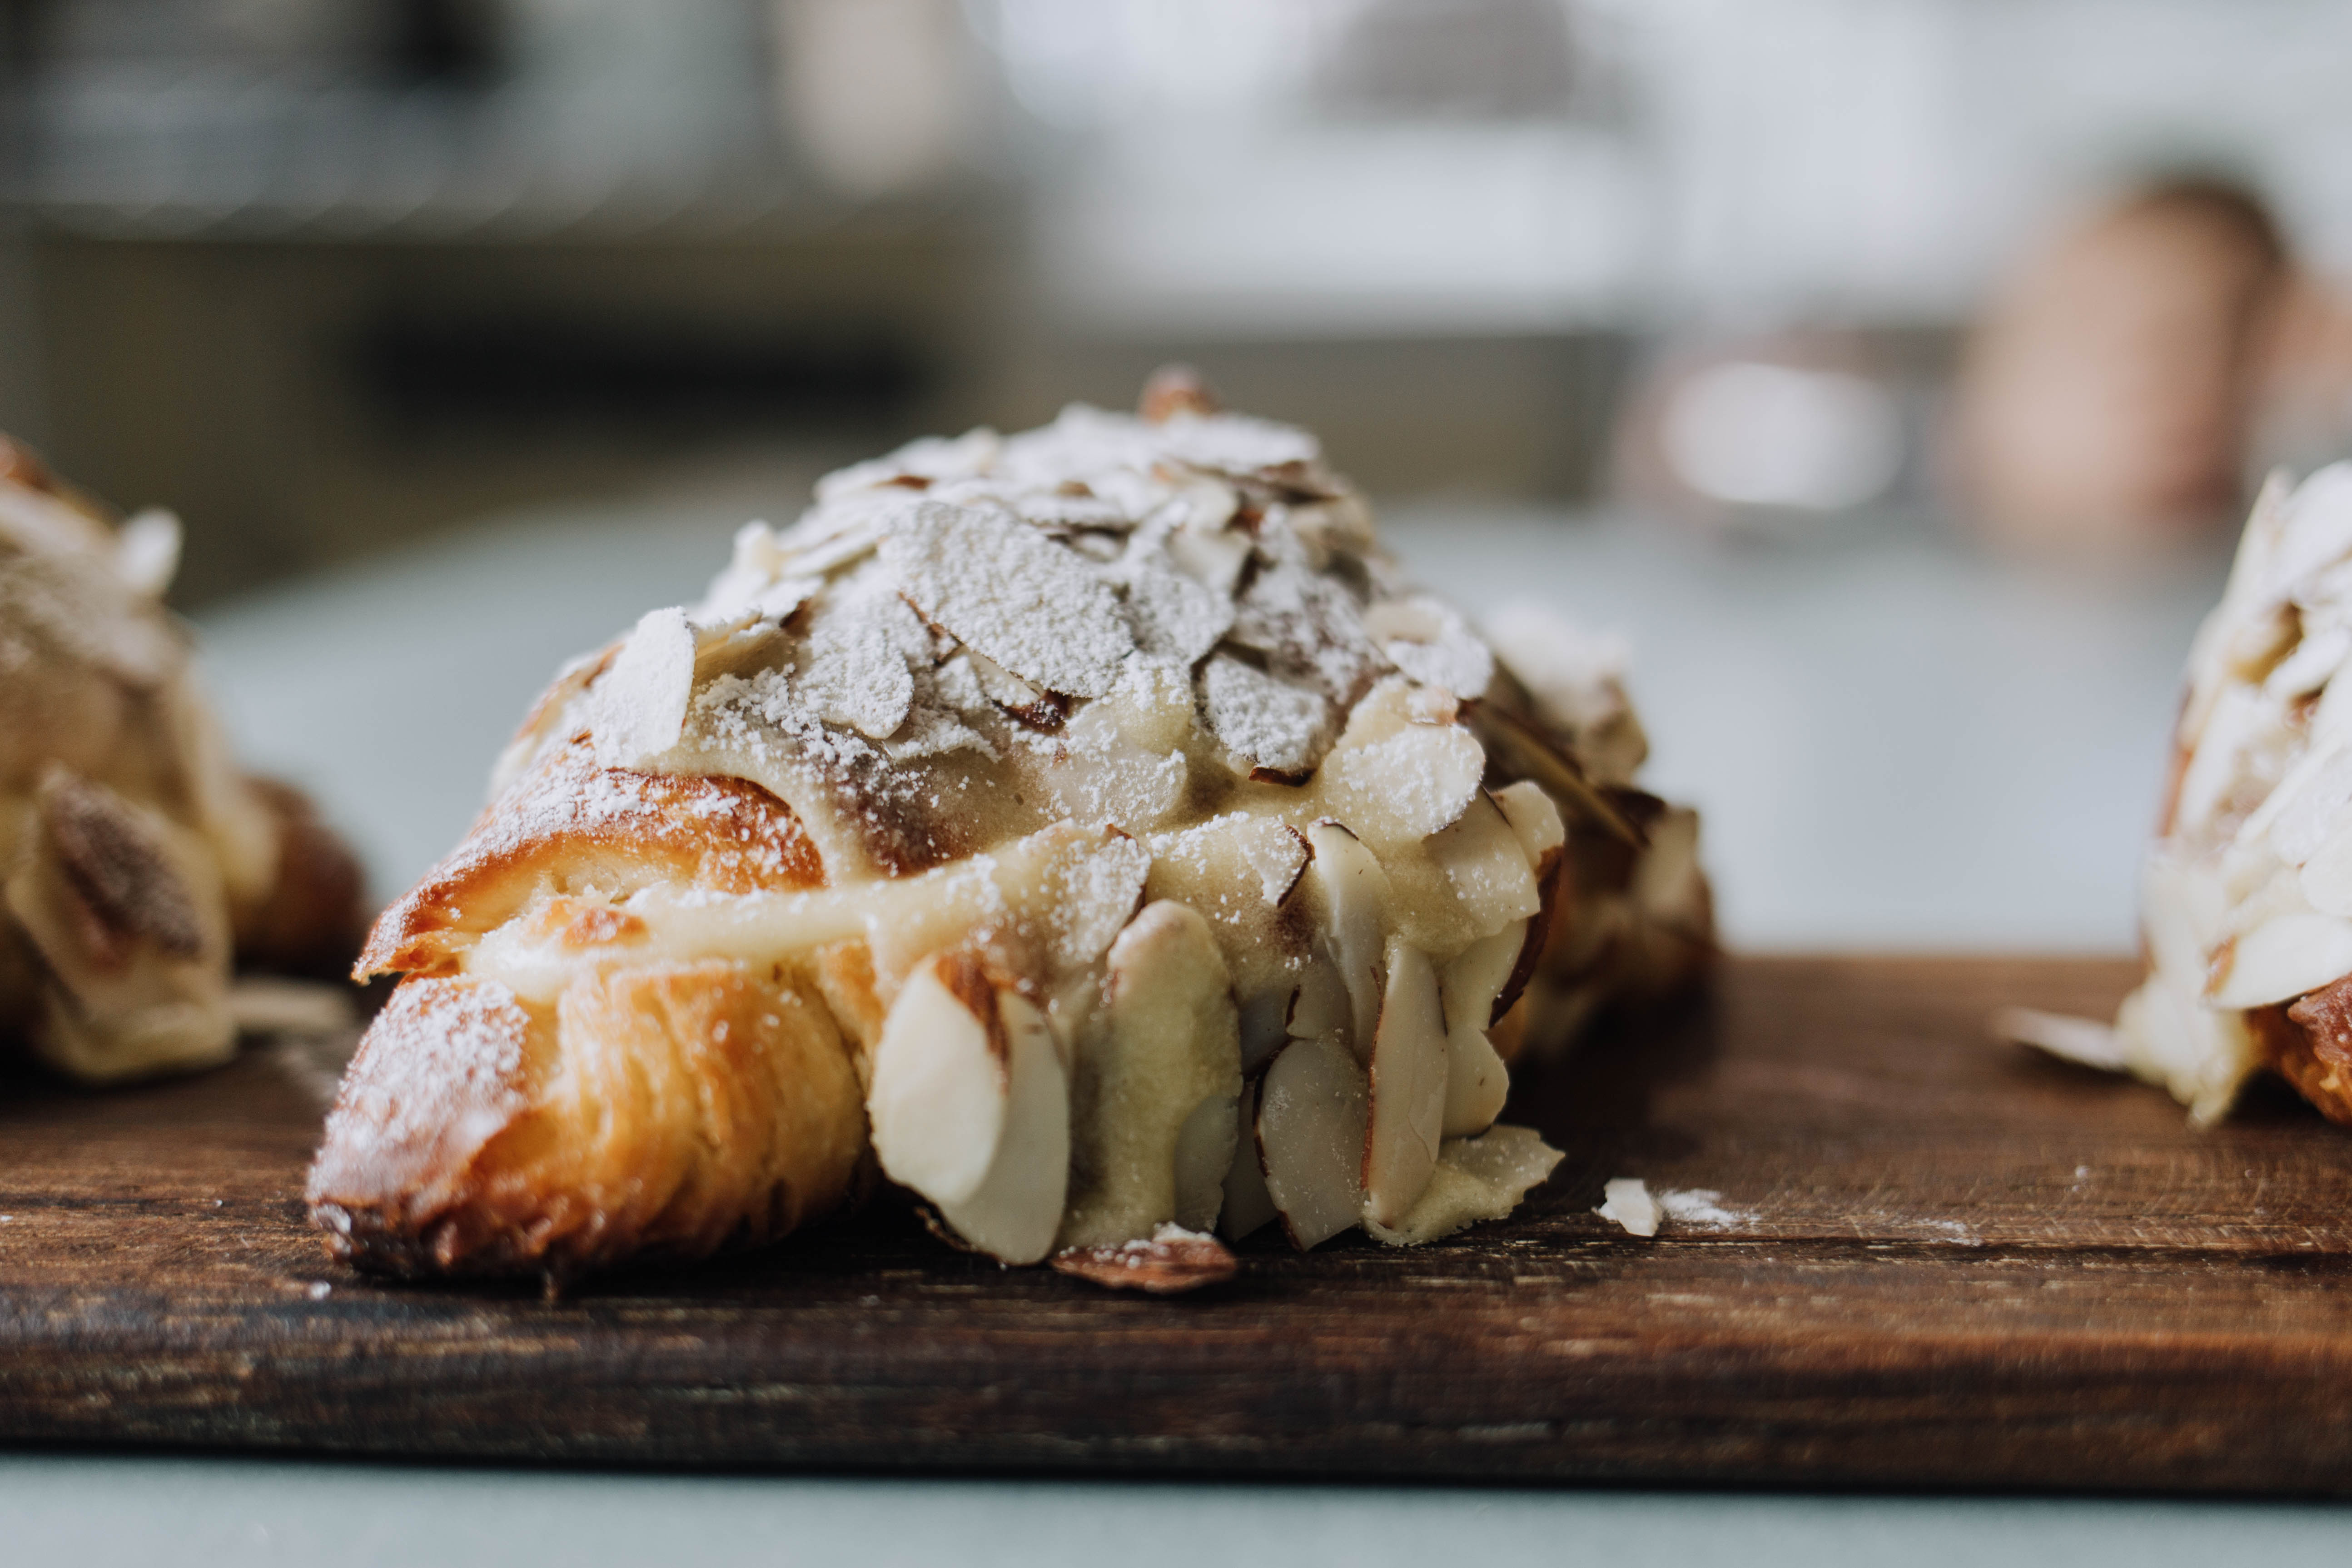 Almond Croissant by Knead and Know (Image: Courtesy Melinda Friend)